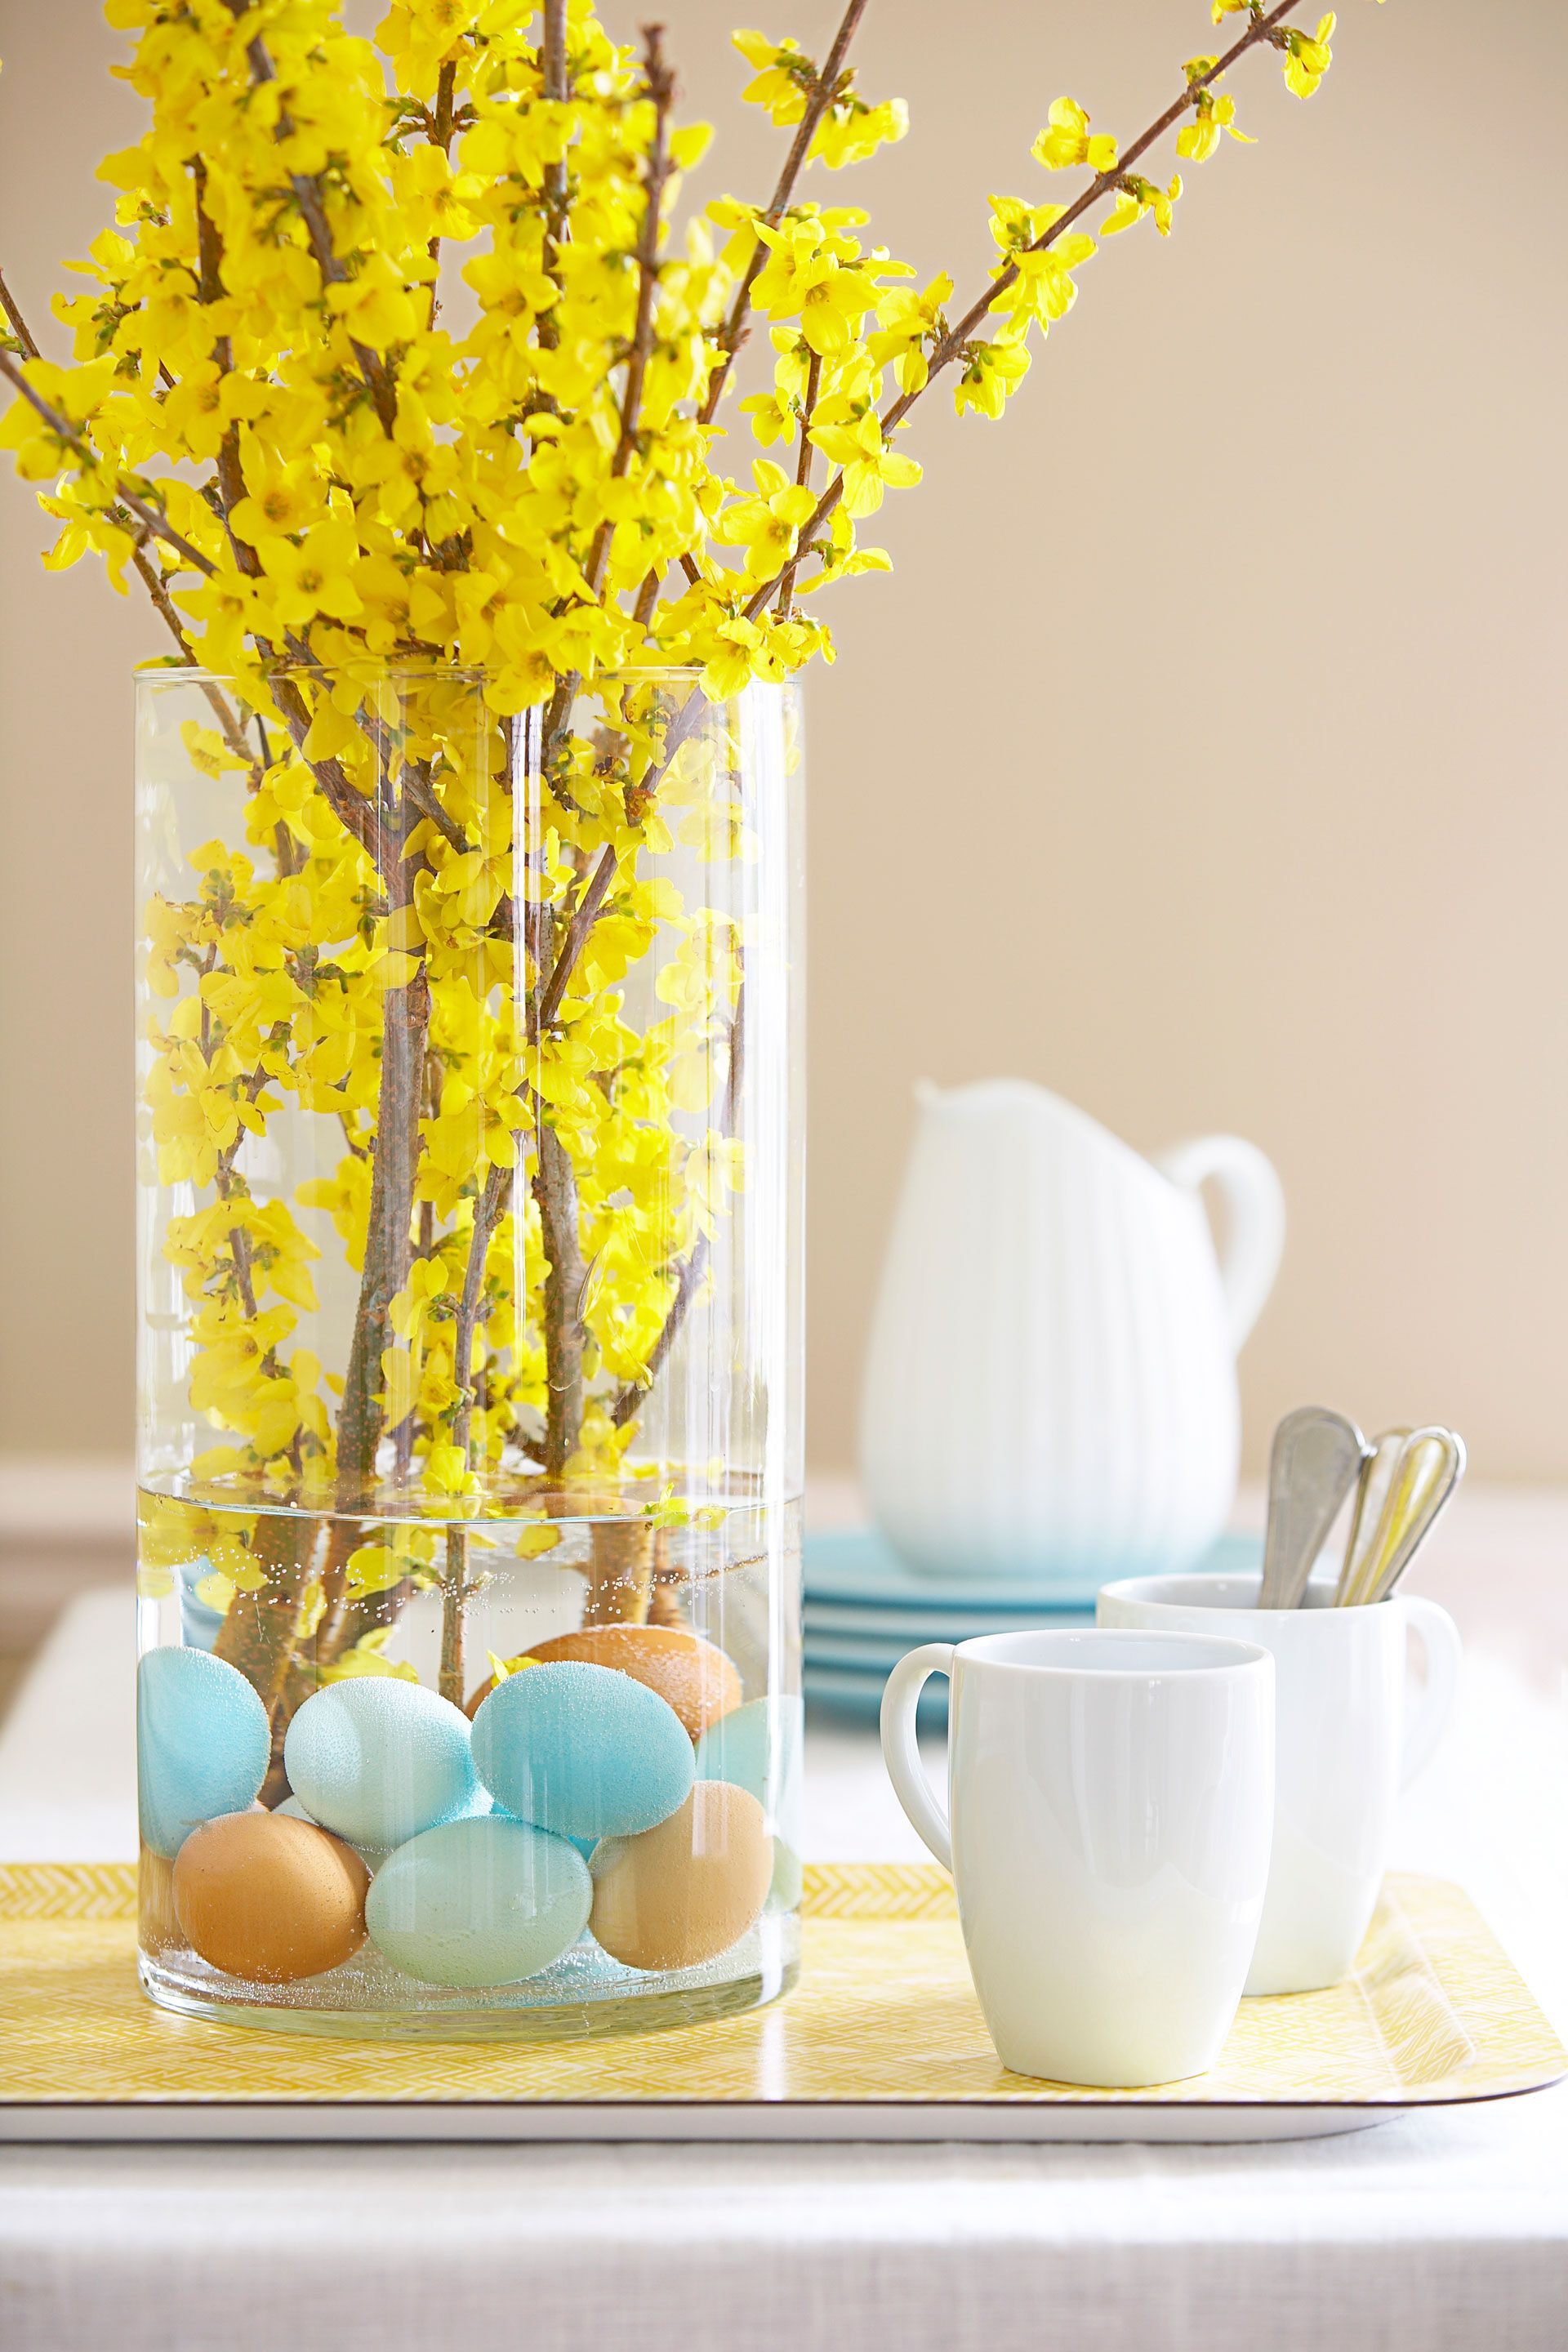 Anchor brilliant forsythia — and give a tongue-in-cheek nod to Easter — with subtly hued hard-cooked eggs. Carefully place a dozen brown, white, and dyed ones (rinse them well first) into a vase, add water, and insert branches.